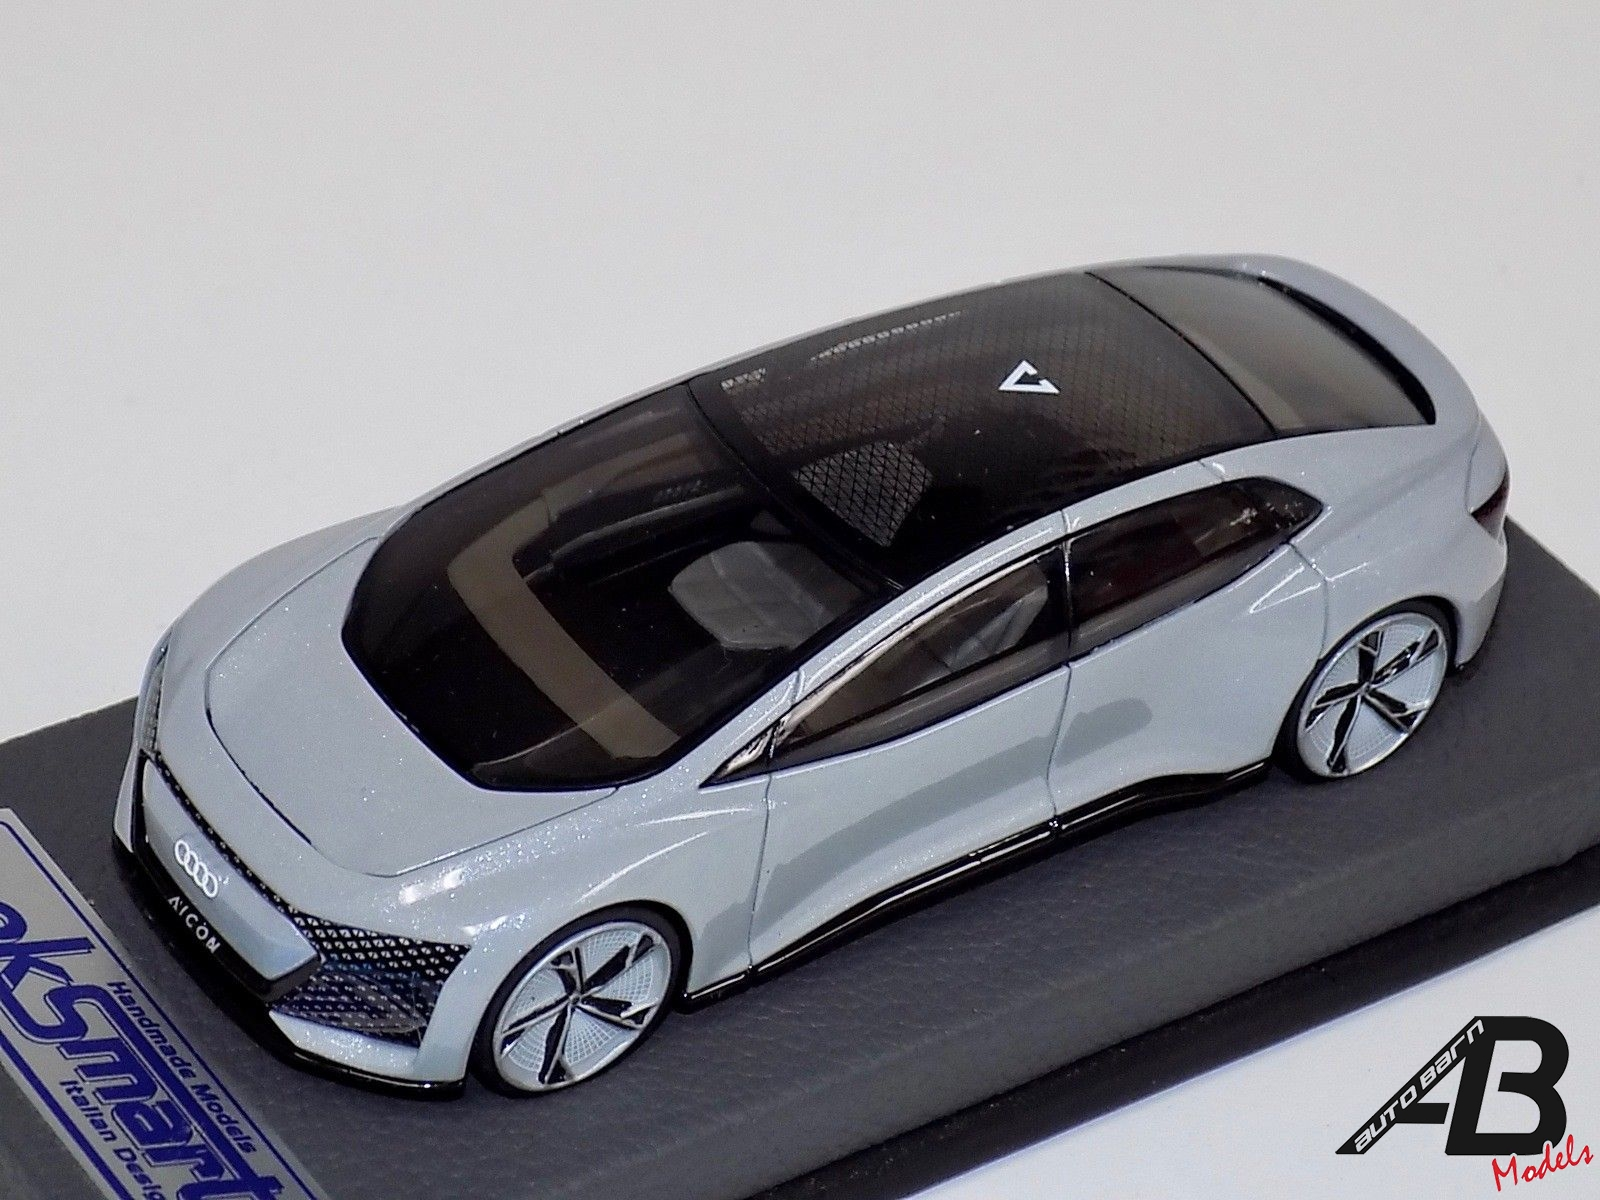 Audi Aicon Concept Silver on Gray Leather Base